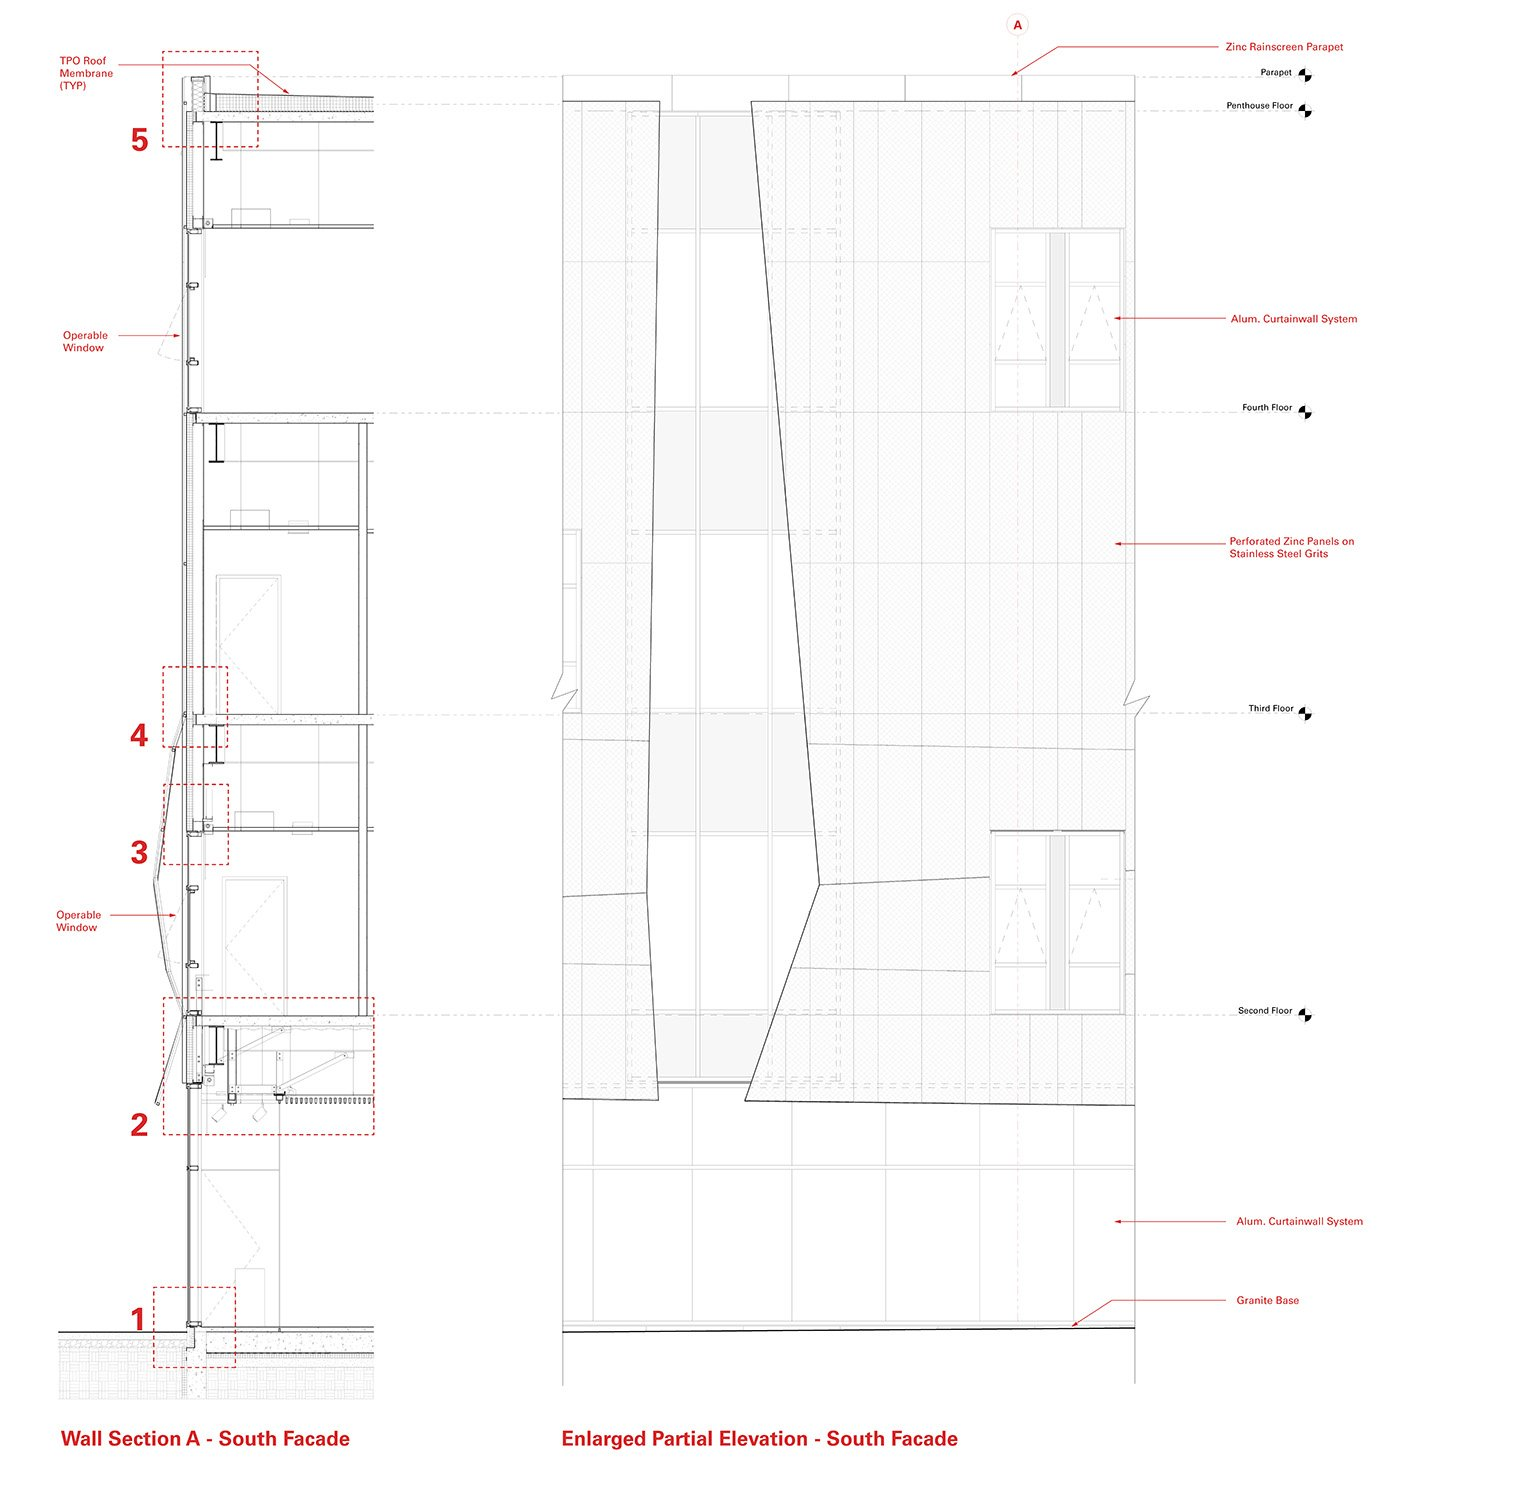 Partial Elevation and Wall Section Leers Weinzapfel Associates}